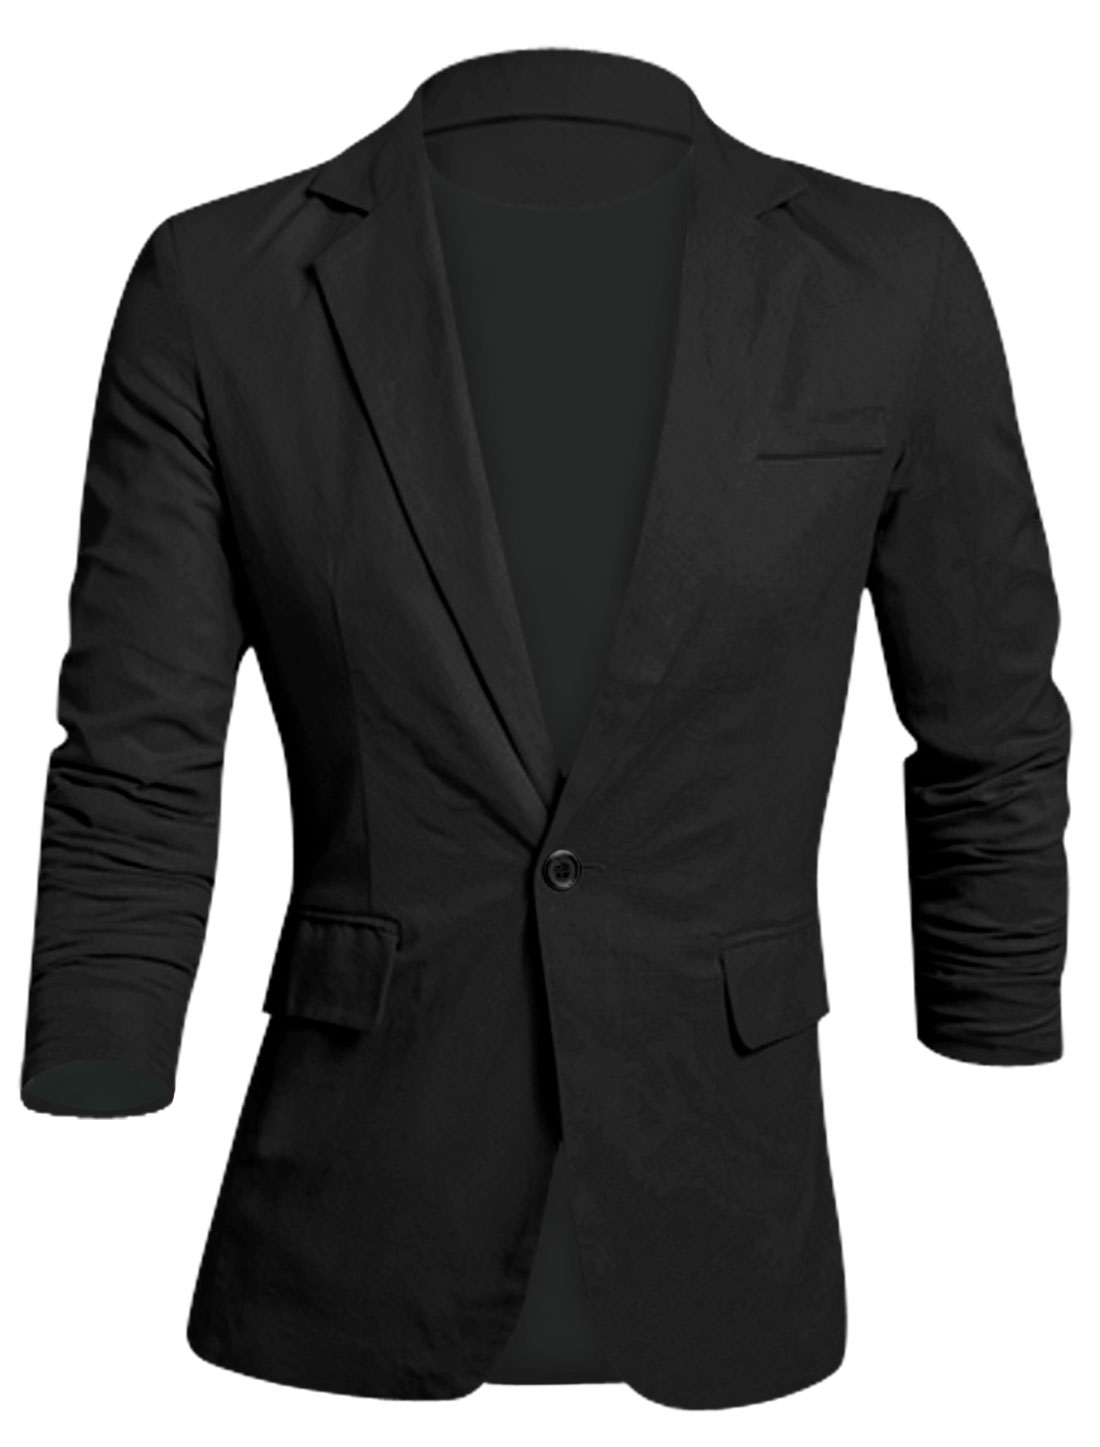 Men Notched Lapel One Button Closure Slim Cut Linen Blazer Black M